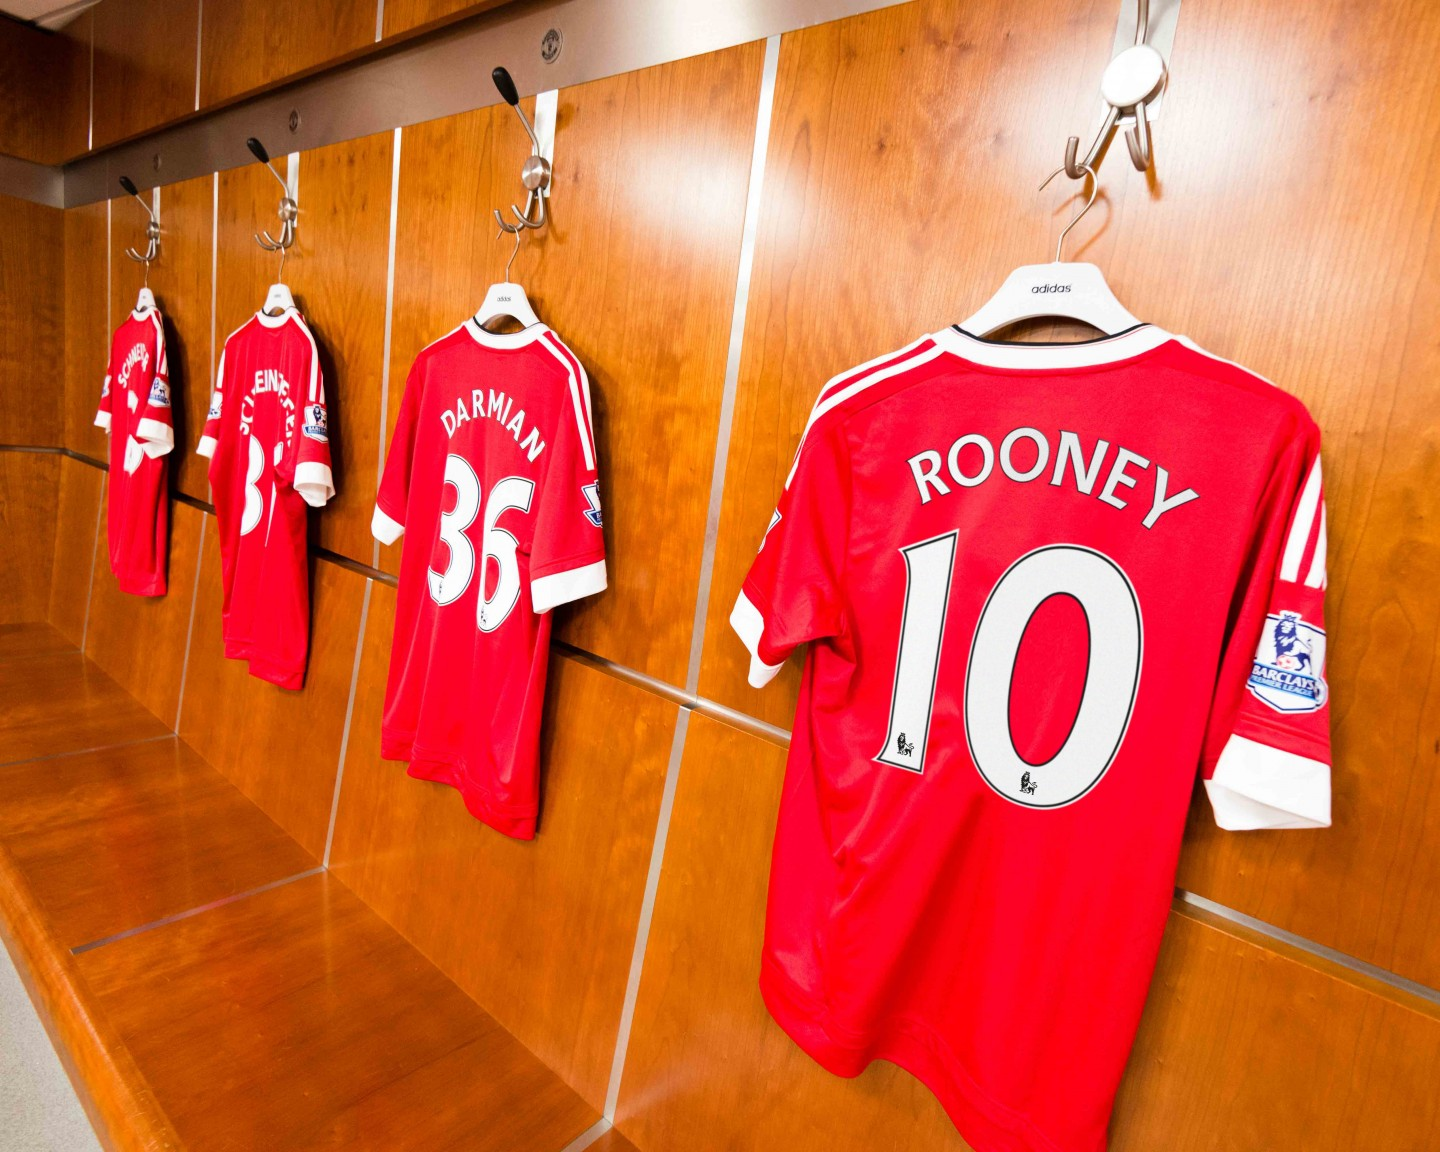 1a6066d7ede Manchester United Stadium Tour. Manchester United Football Museum